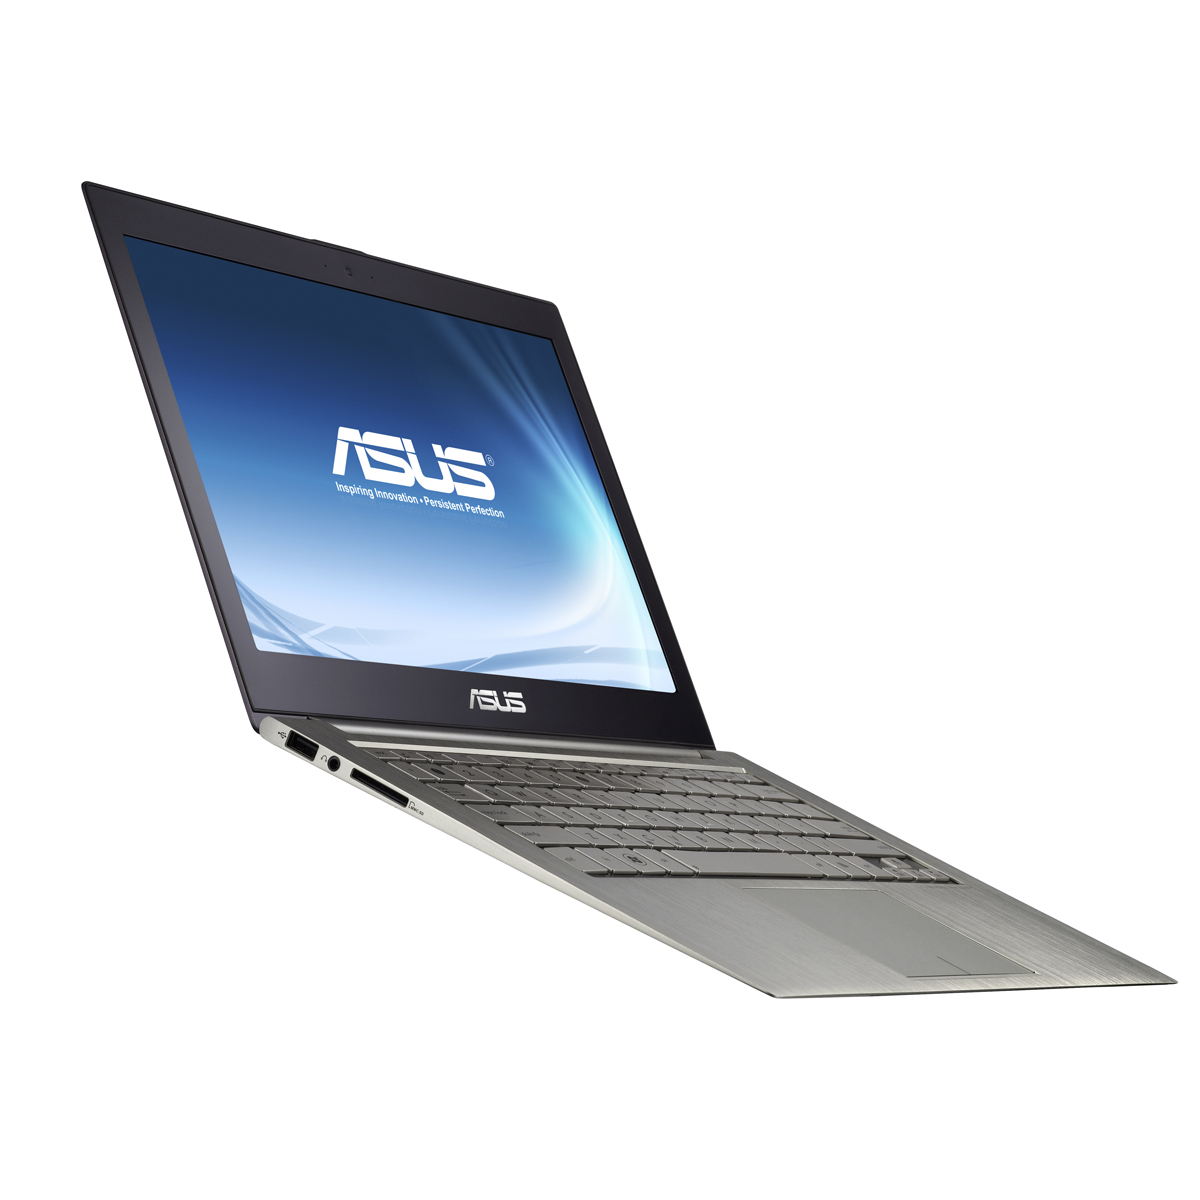 "PC portable ASUS ZenBook UX31E-RY010X Intel Core i7-2677M 4 Go SSD 256 Go 13.3"" LED Wi-Fi N/Bluetooth Webcam Windows 7 Professionnel 64 bits (garantie constructeur 2 ans)"